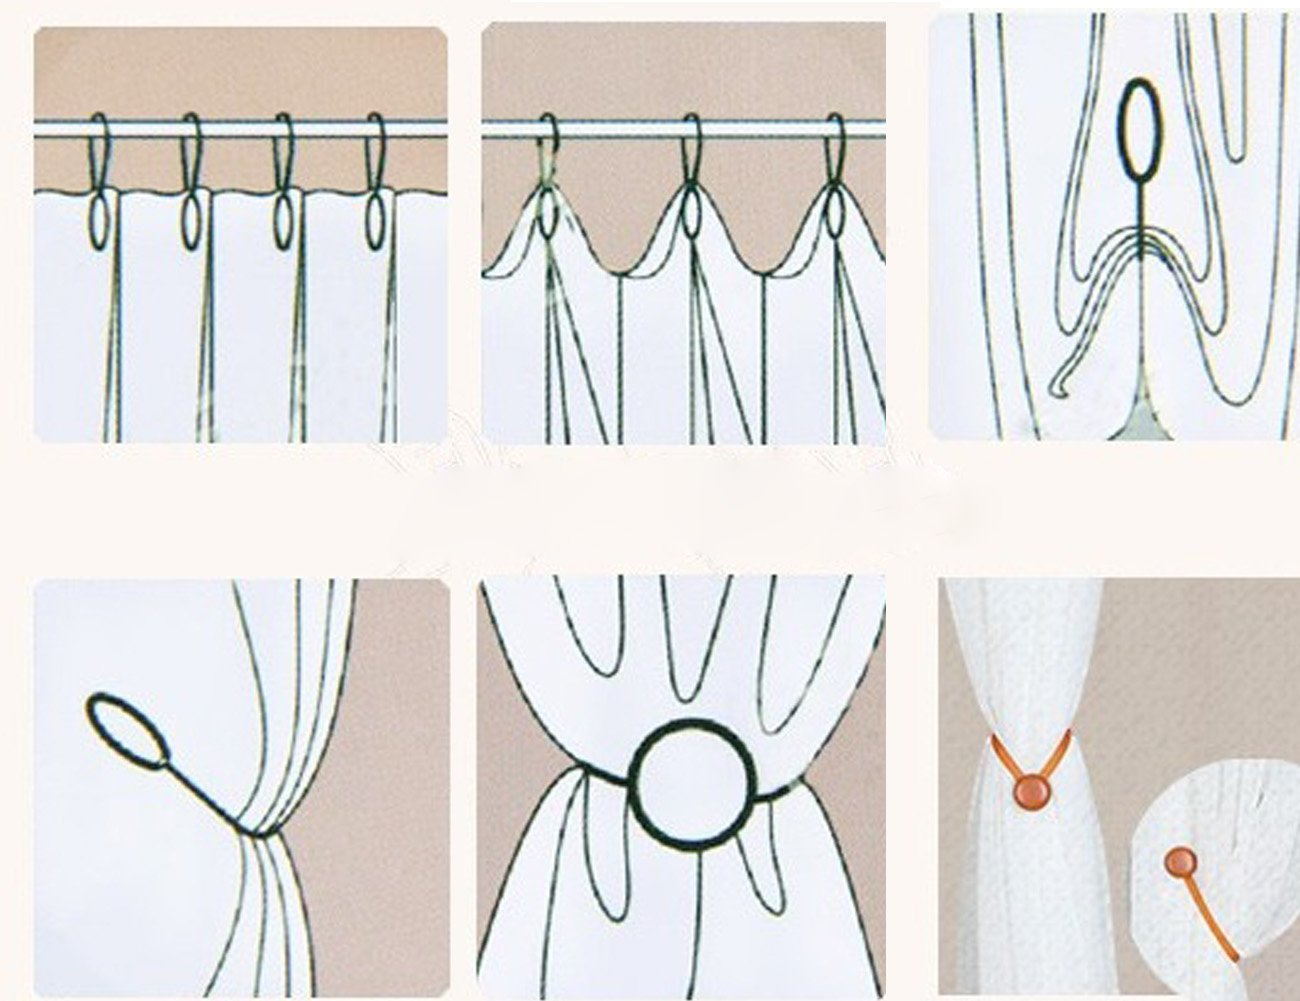 Beige White Shinywear 2 Pieces Classic Strong Magnetic Curtain Tiebacks Clips Home Office Decorative Drapes Holdbacks Holders European Style Solid Color Eco-friendly Durable Fiber Material